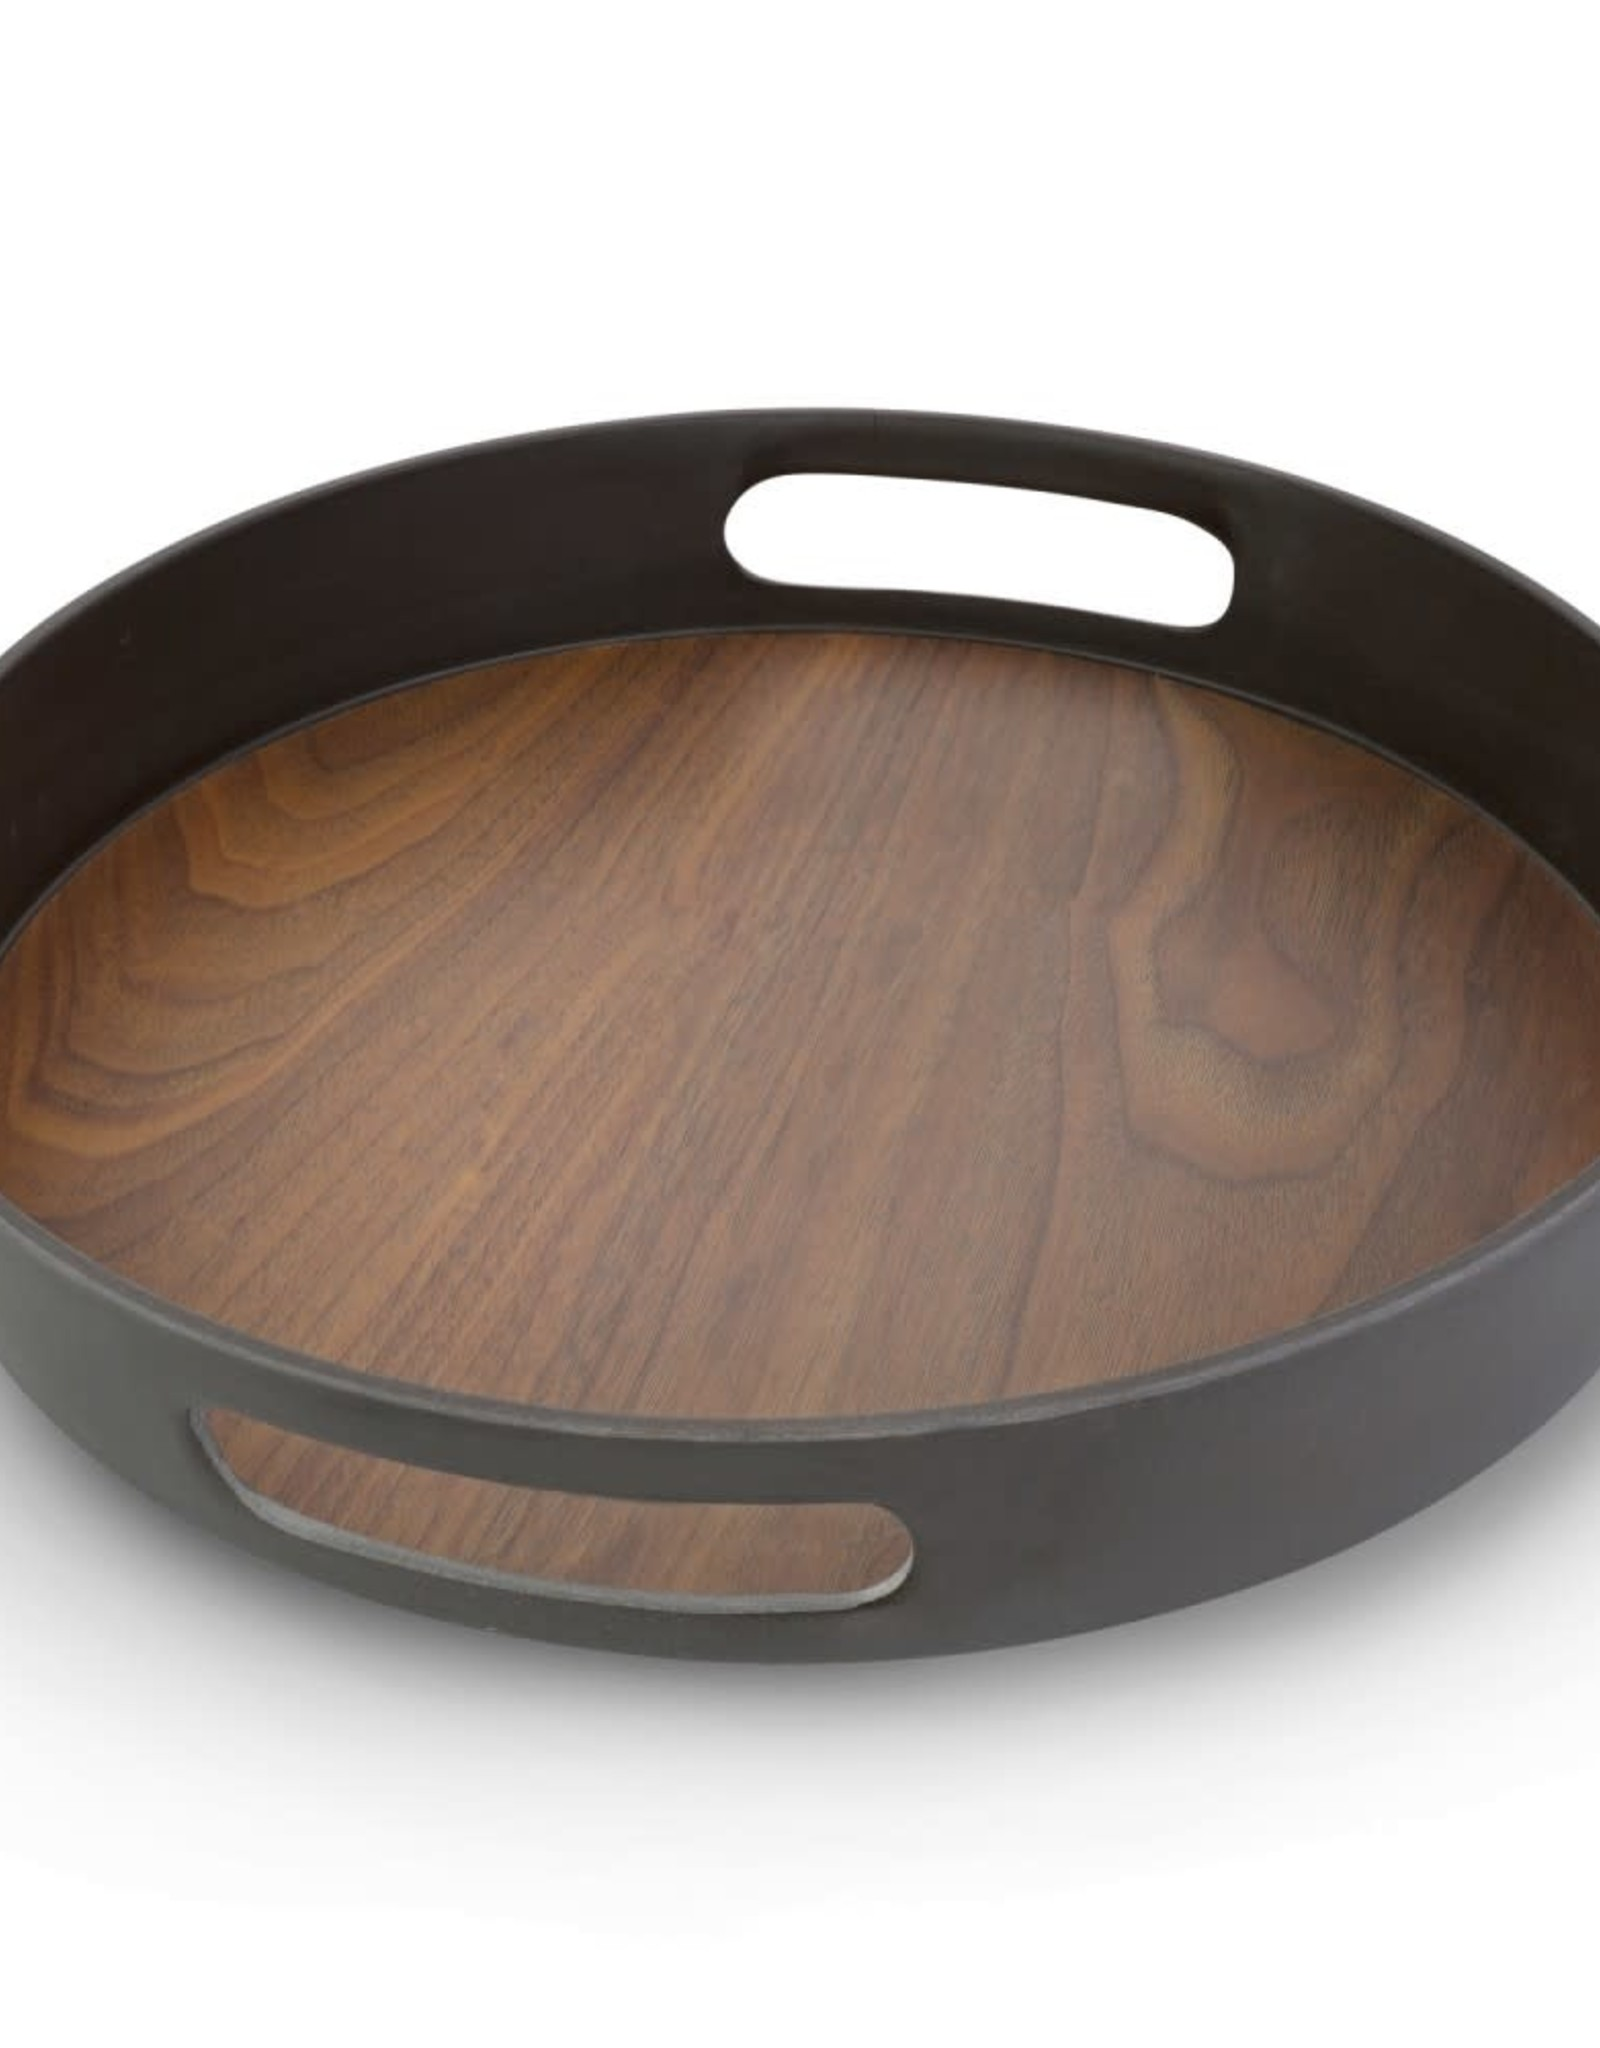 11.75 Inch (30 Cm) Bamboo Round Tray